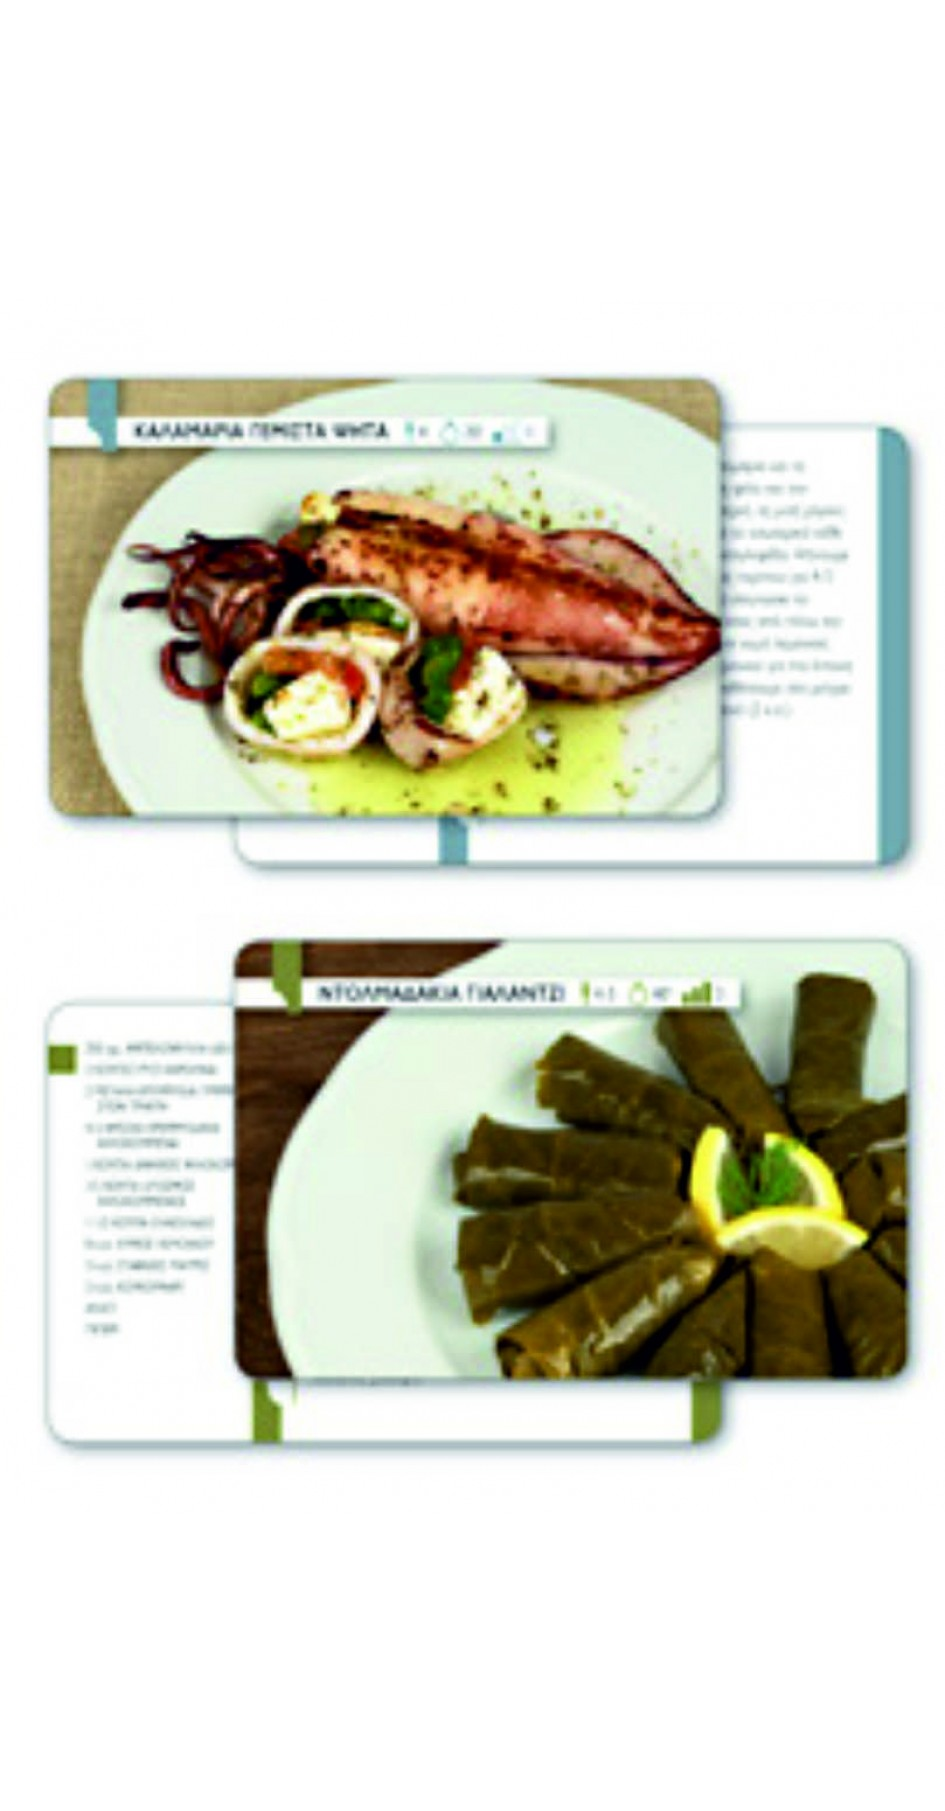 Greek Cuisine: Greek traditional recipes in 50 cards